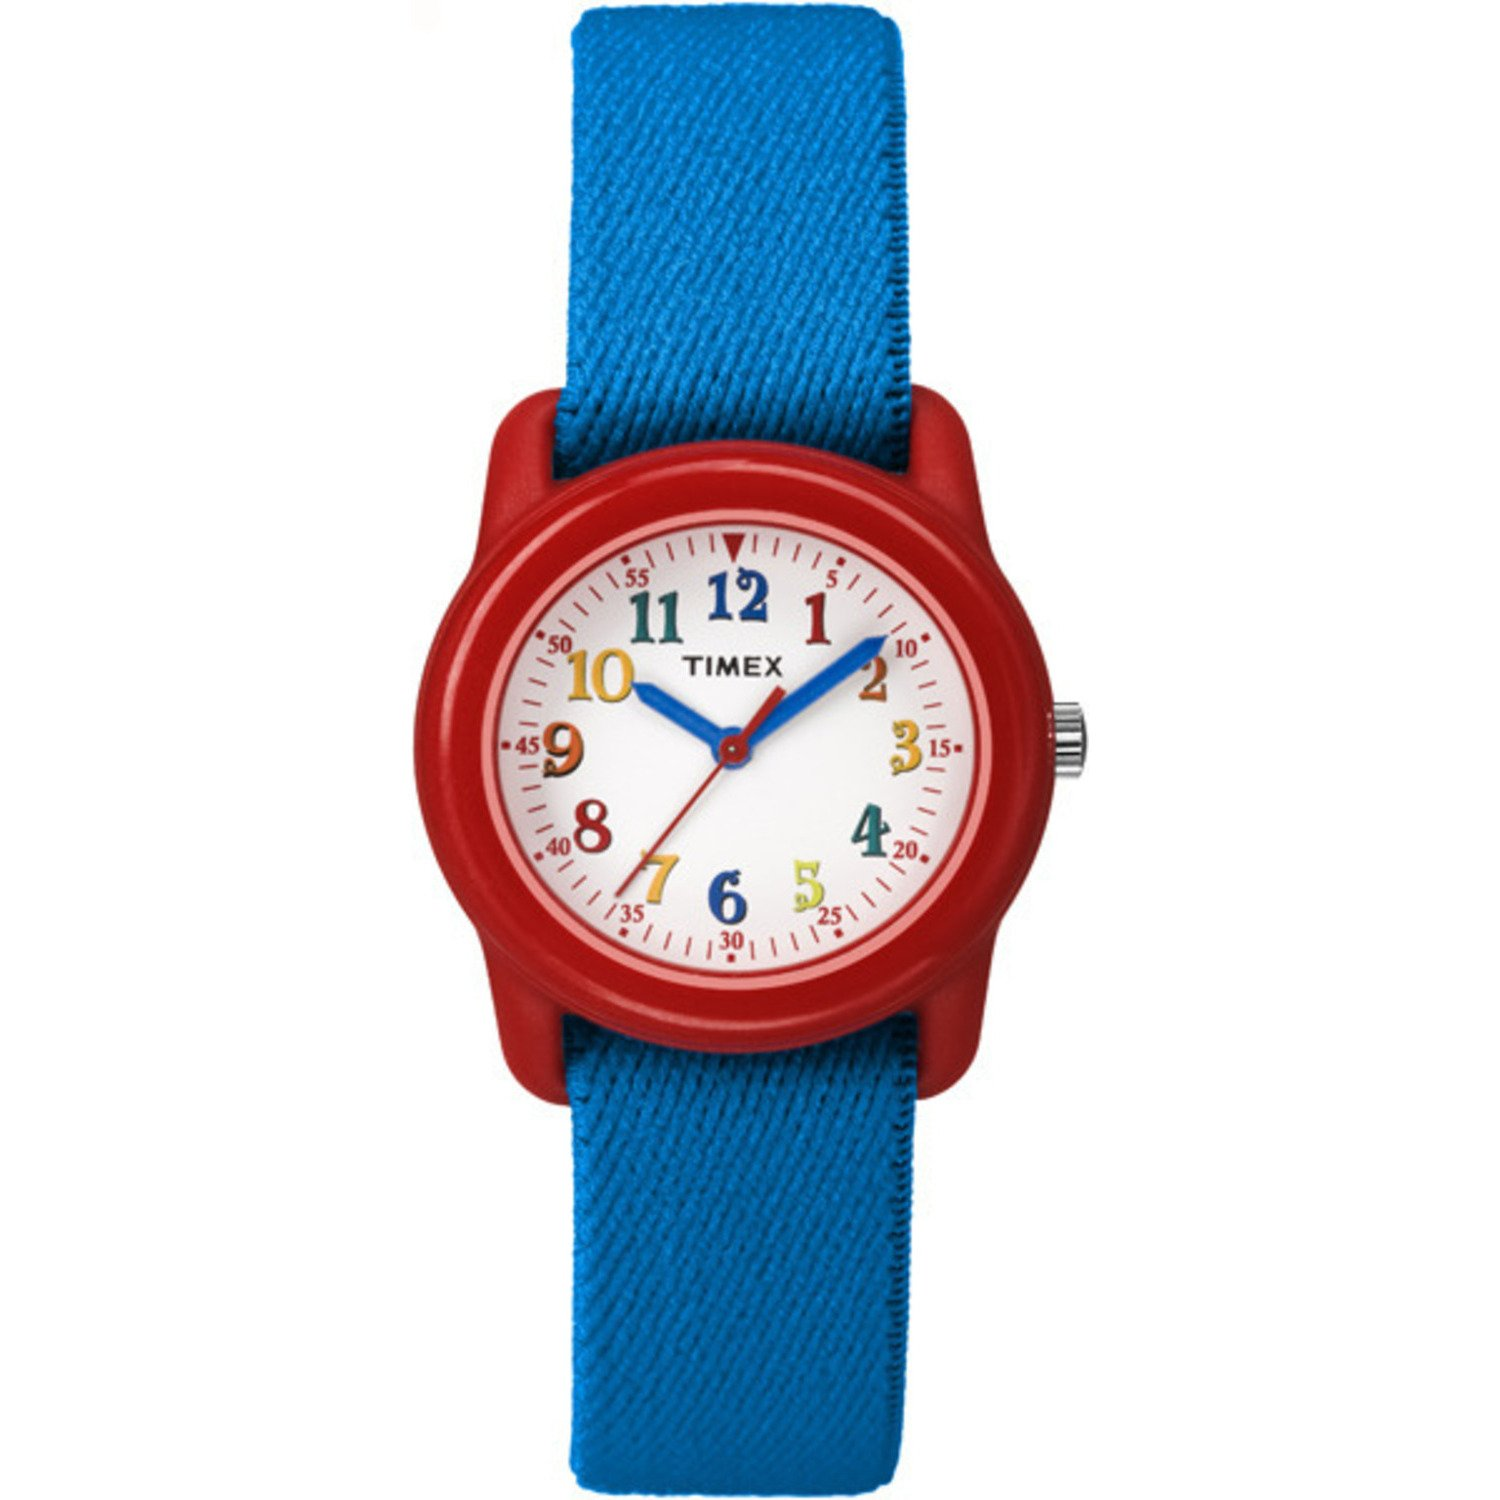 Timex Youth Timex Kids Analog | Blue Strap Red Case | Watch TW7B99500 by Timex